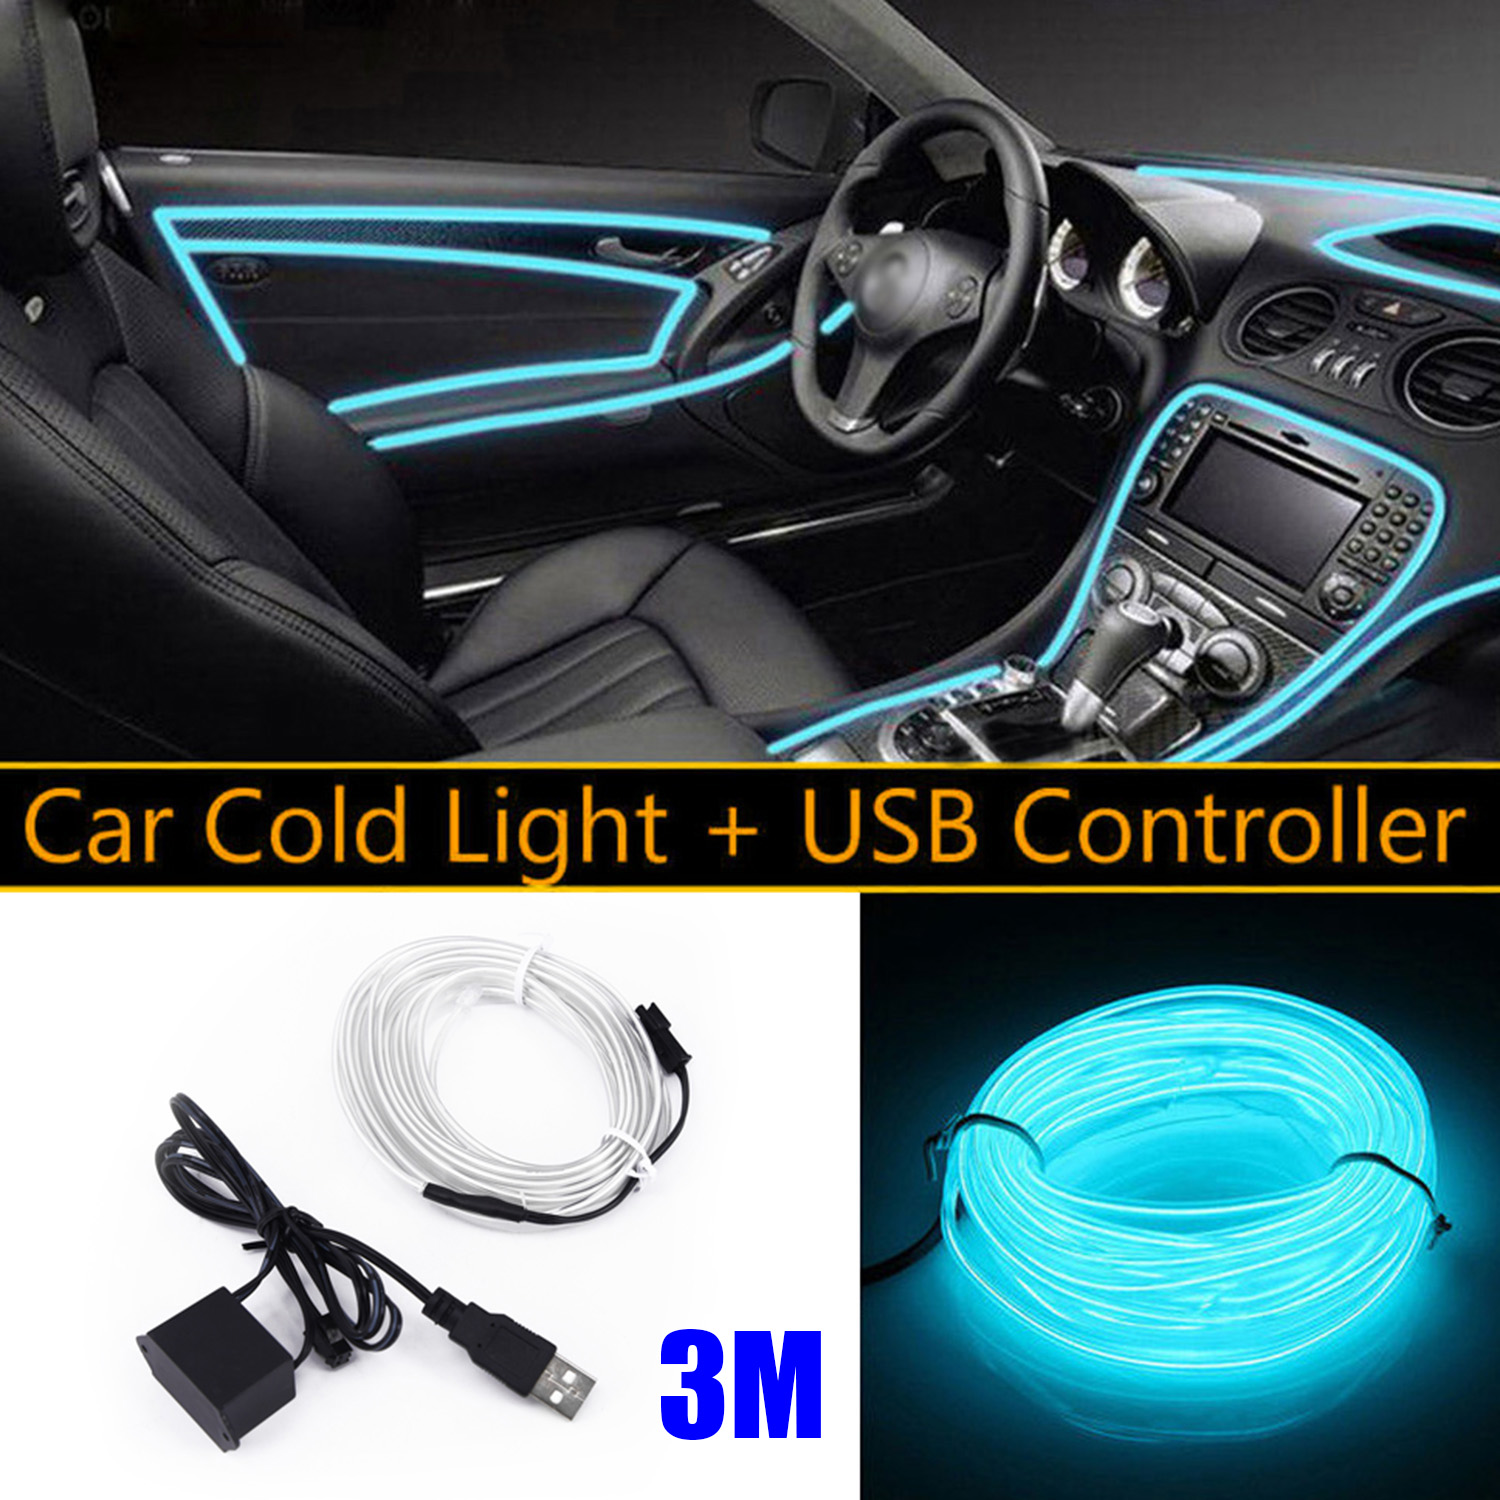 Tube EL Wire String Light Strip Strip Car Interior Parts 3 Meters Accessories Decoration Light Car & Truck Parts